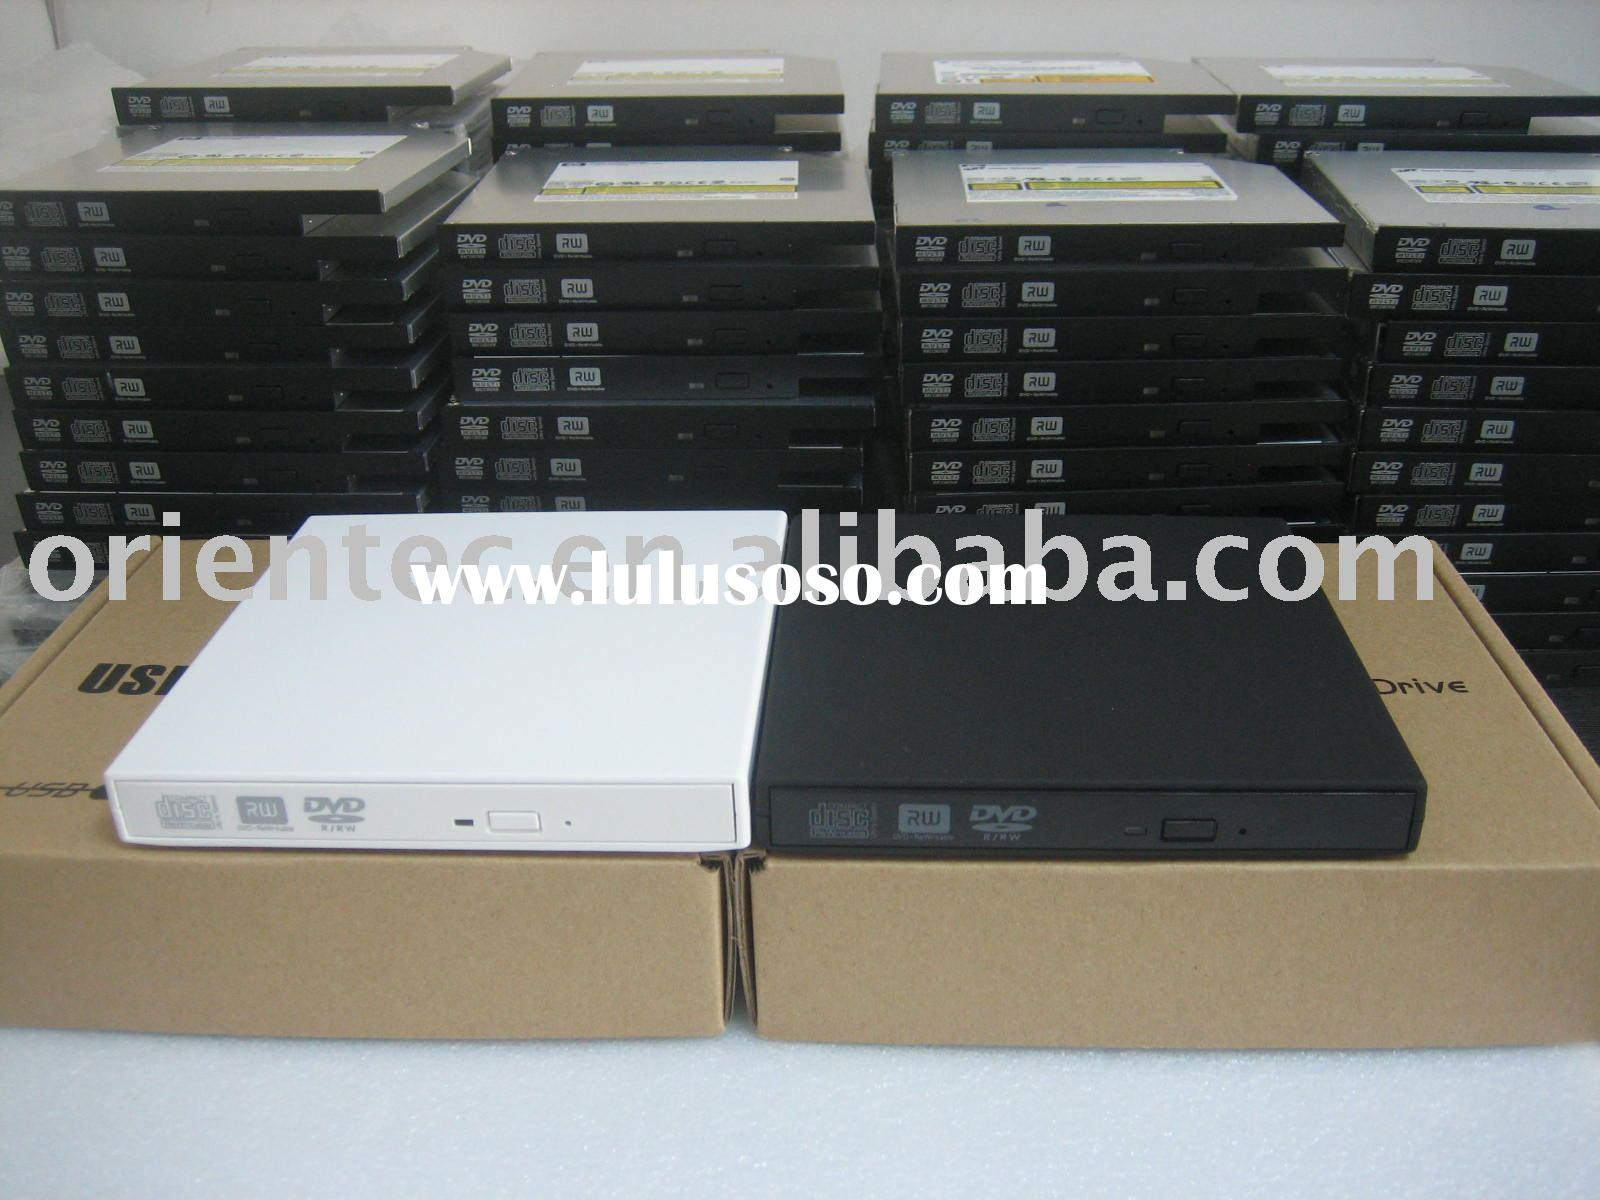 original HL T50N dvd rw drive, dvd burner, dvd combo, laptop dvd rw, external dvd writer